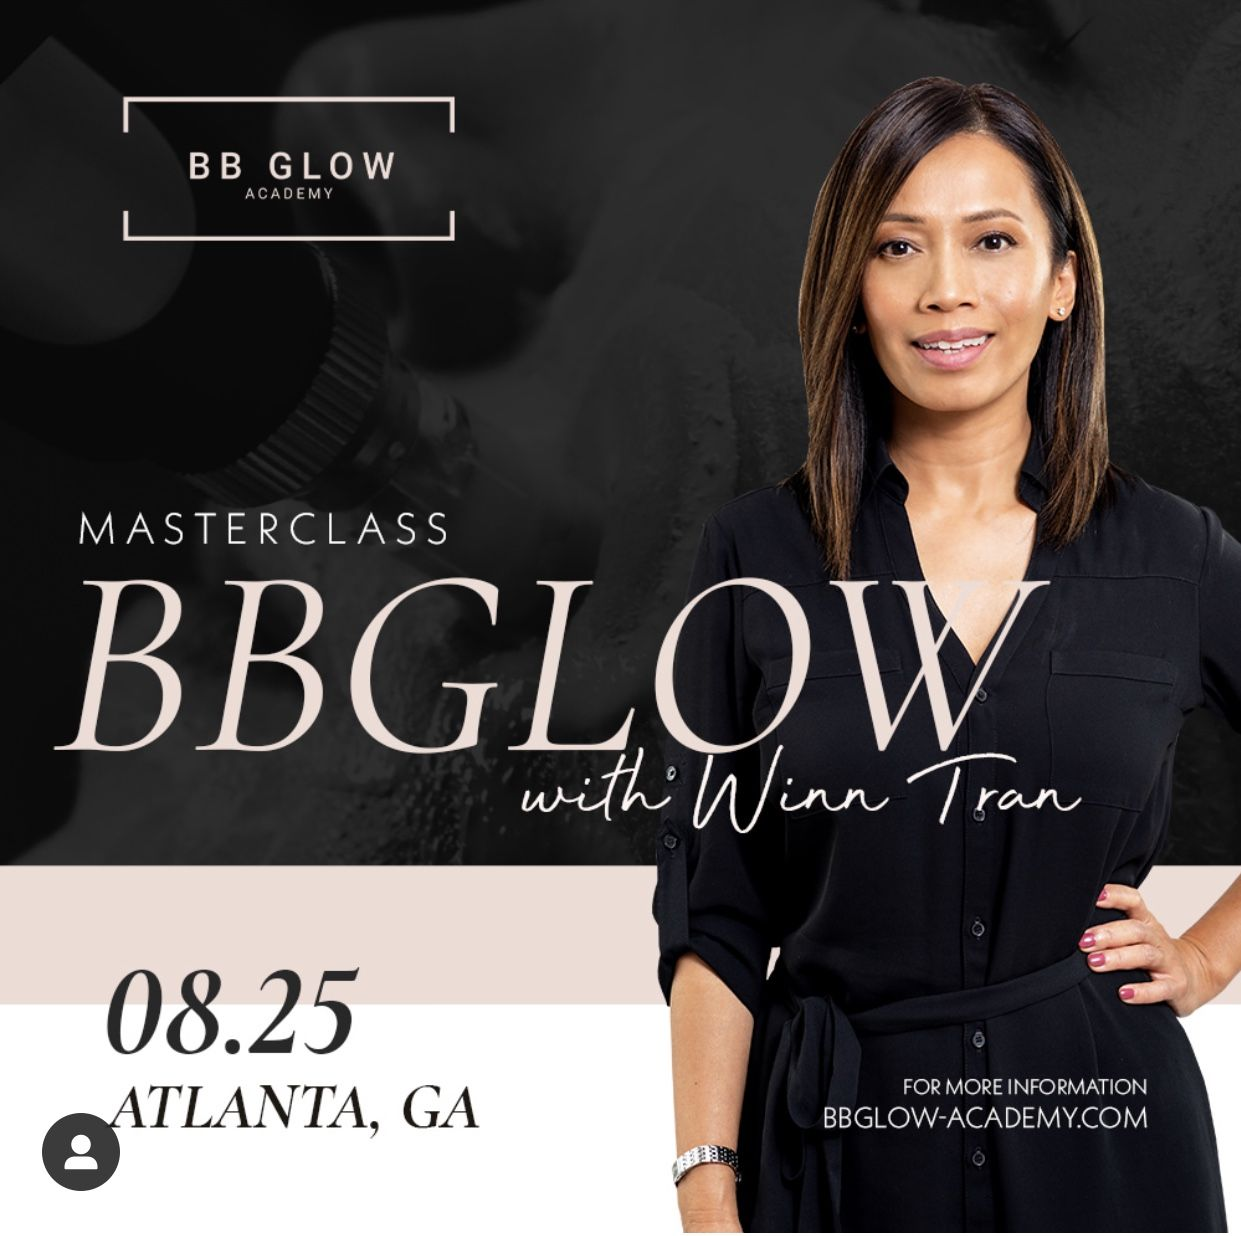 Do you live in or near Atlanta? If so, you need to